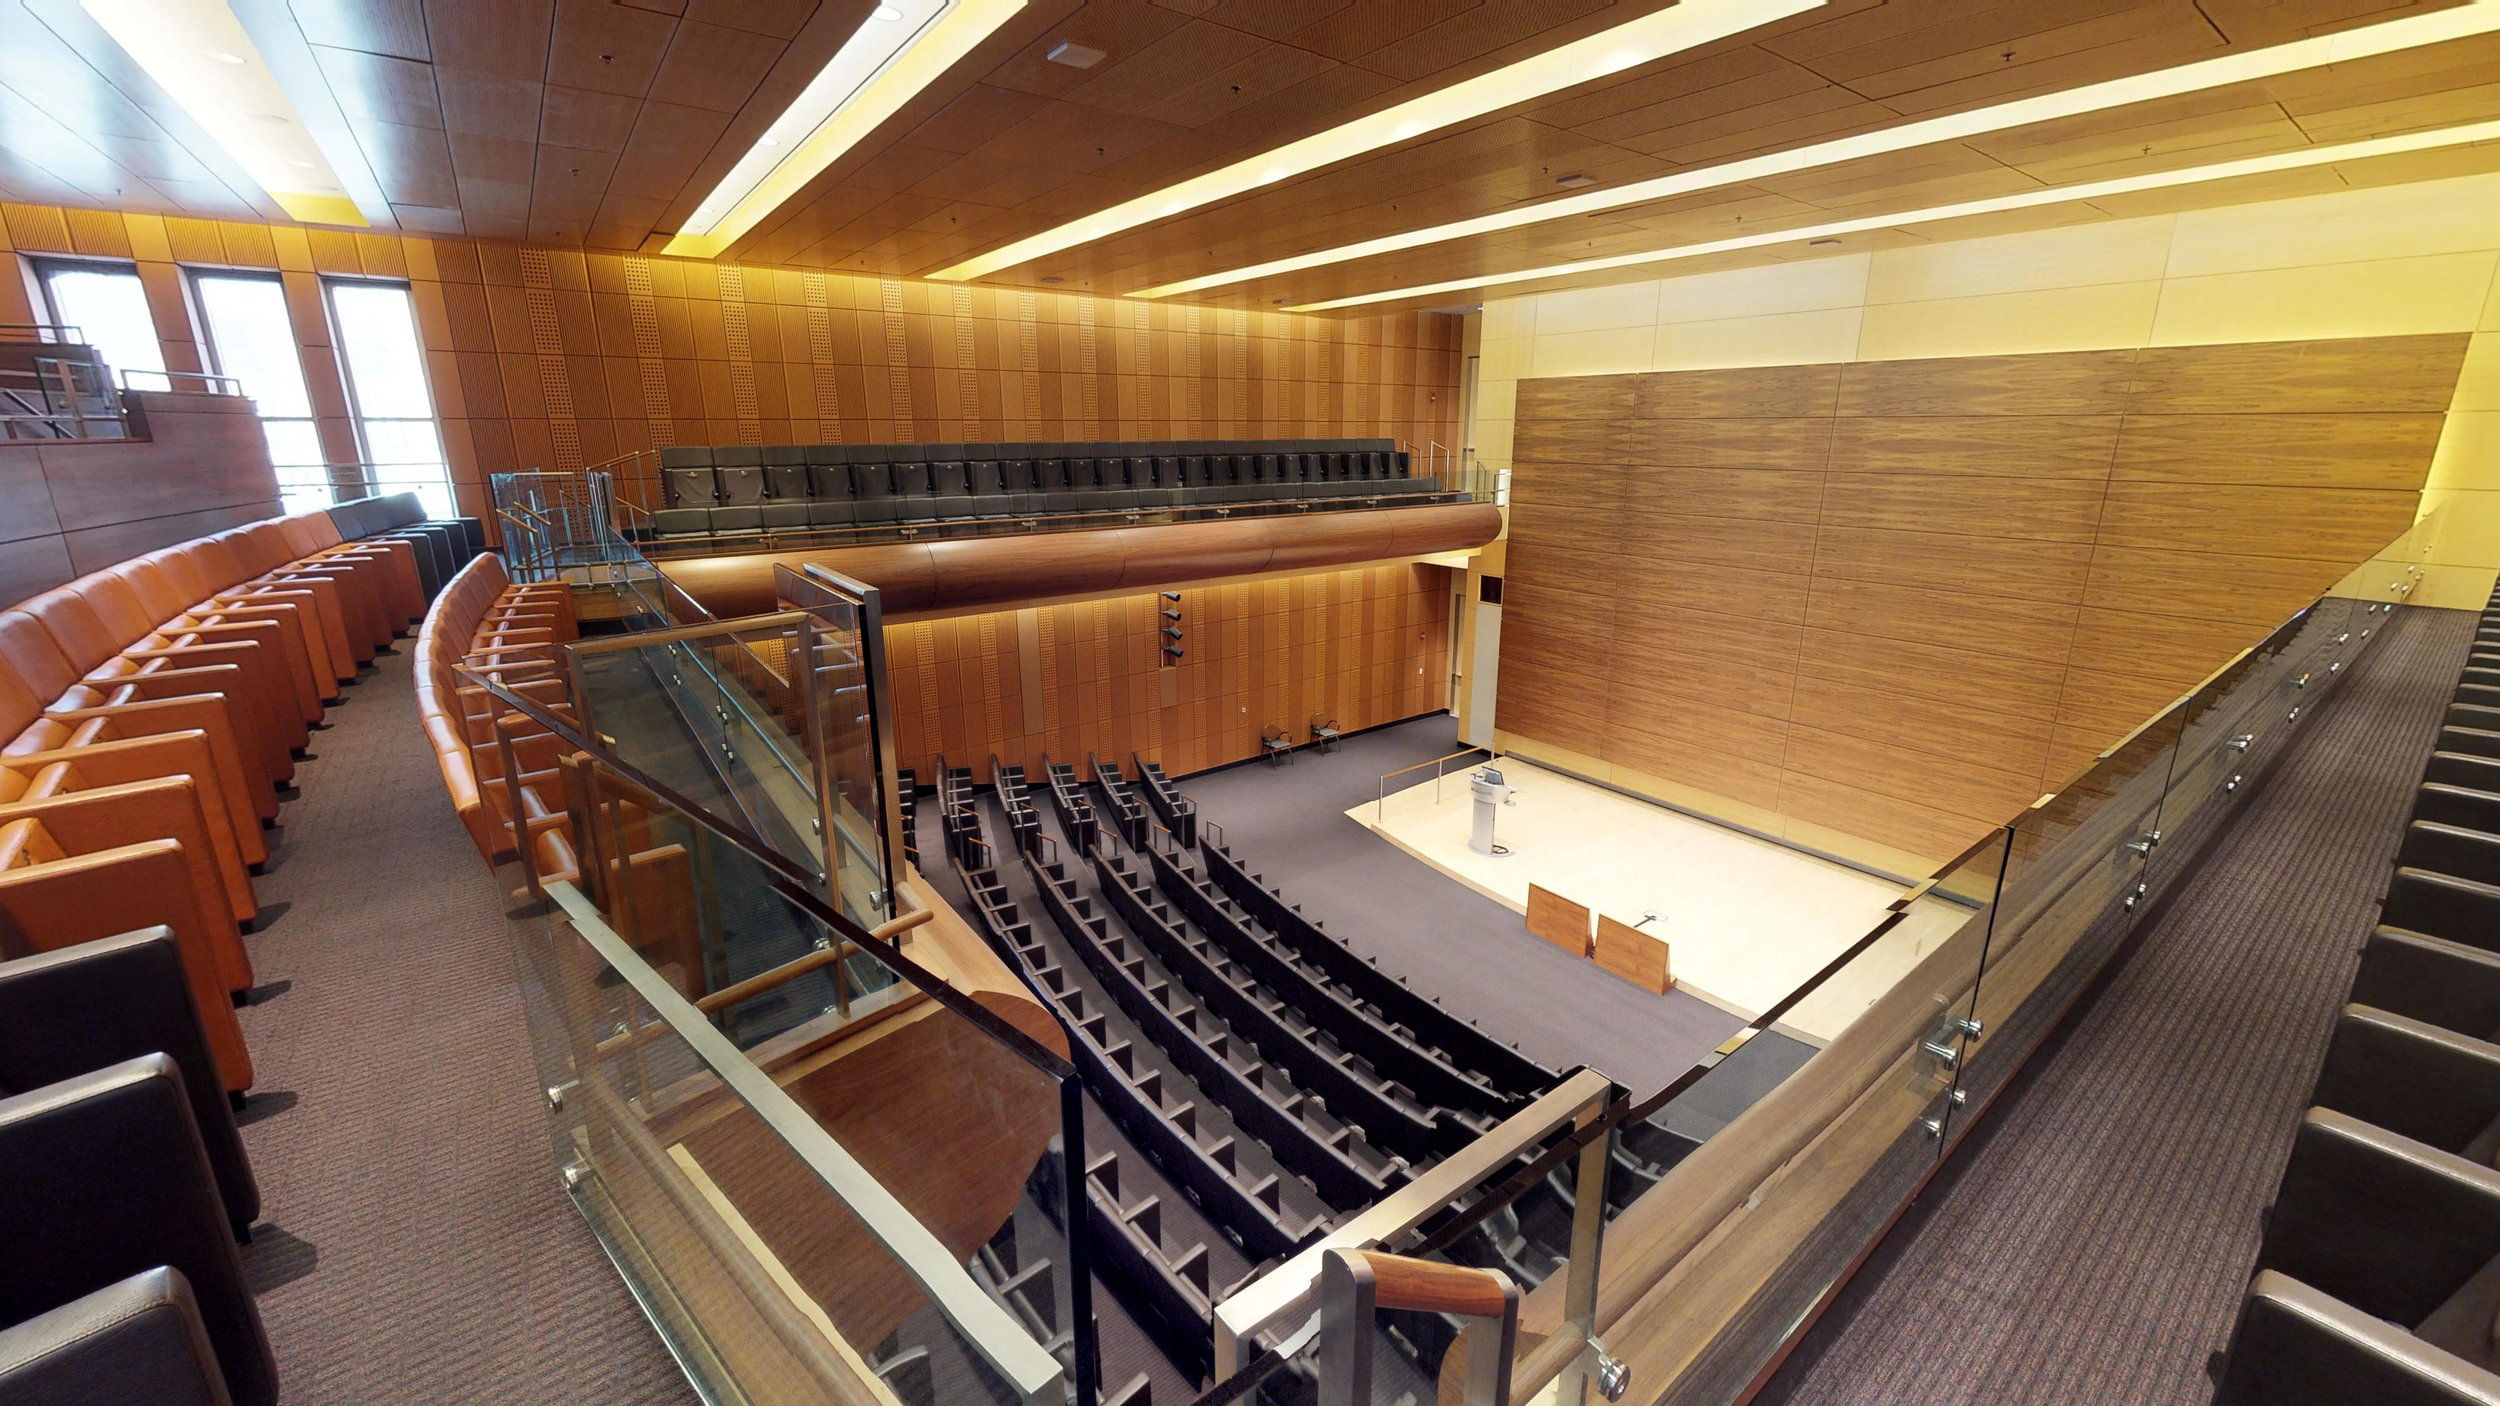 Stephen-M-Ross-School-of-Business-Robertson-Aud-Balcony (1).jpg